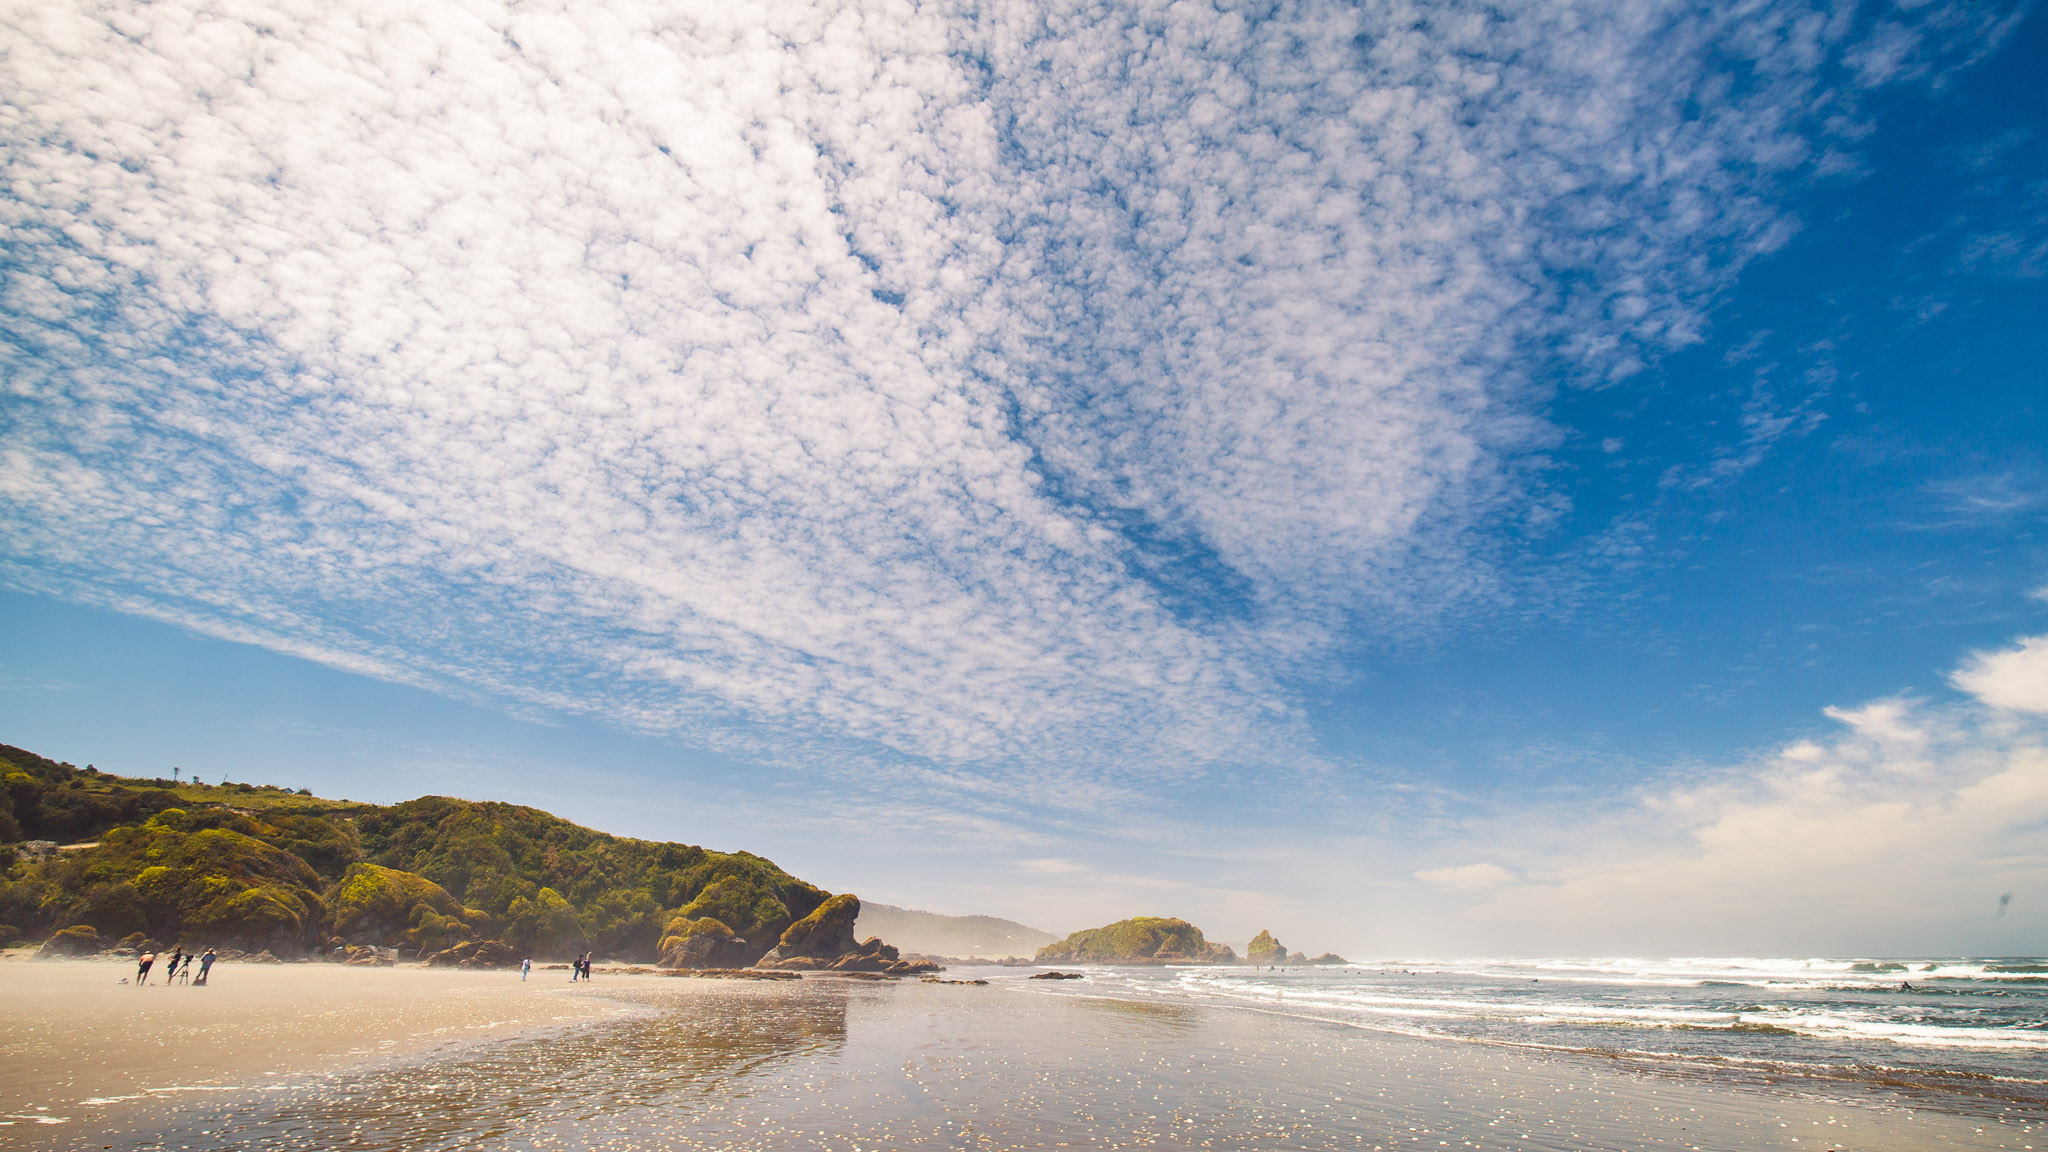 chile-chiloe-national-park-beach-ocean